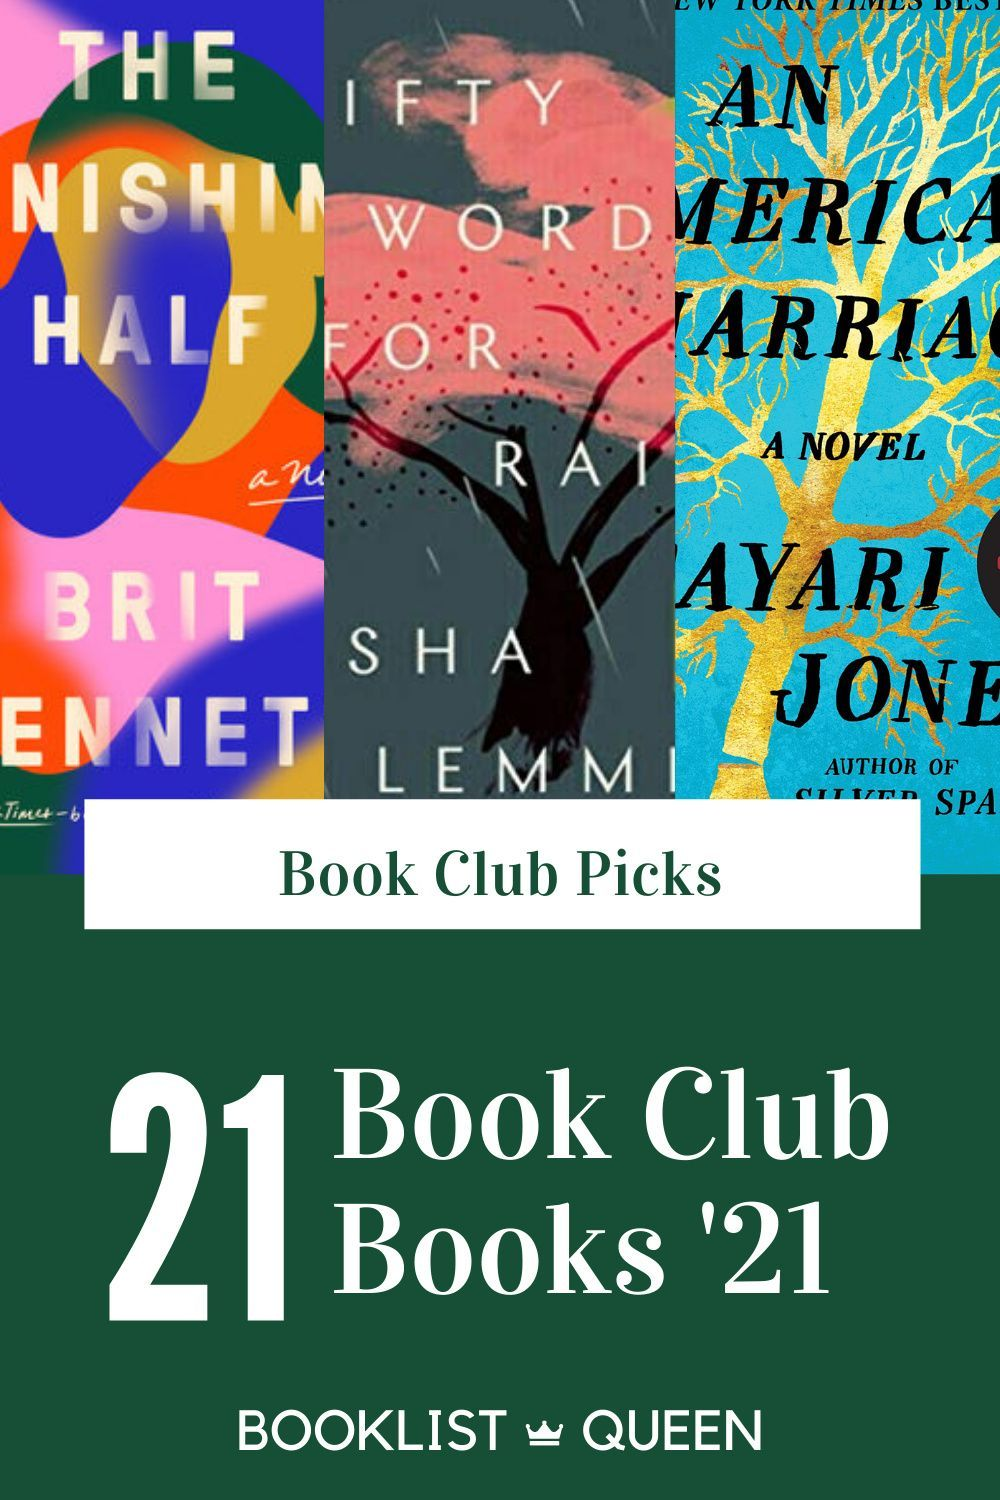 Top 21 Book Club Books For 2021 Book Club Books Book Club Recommendations Book Club